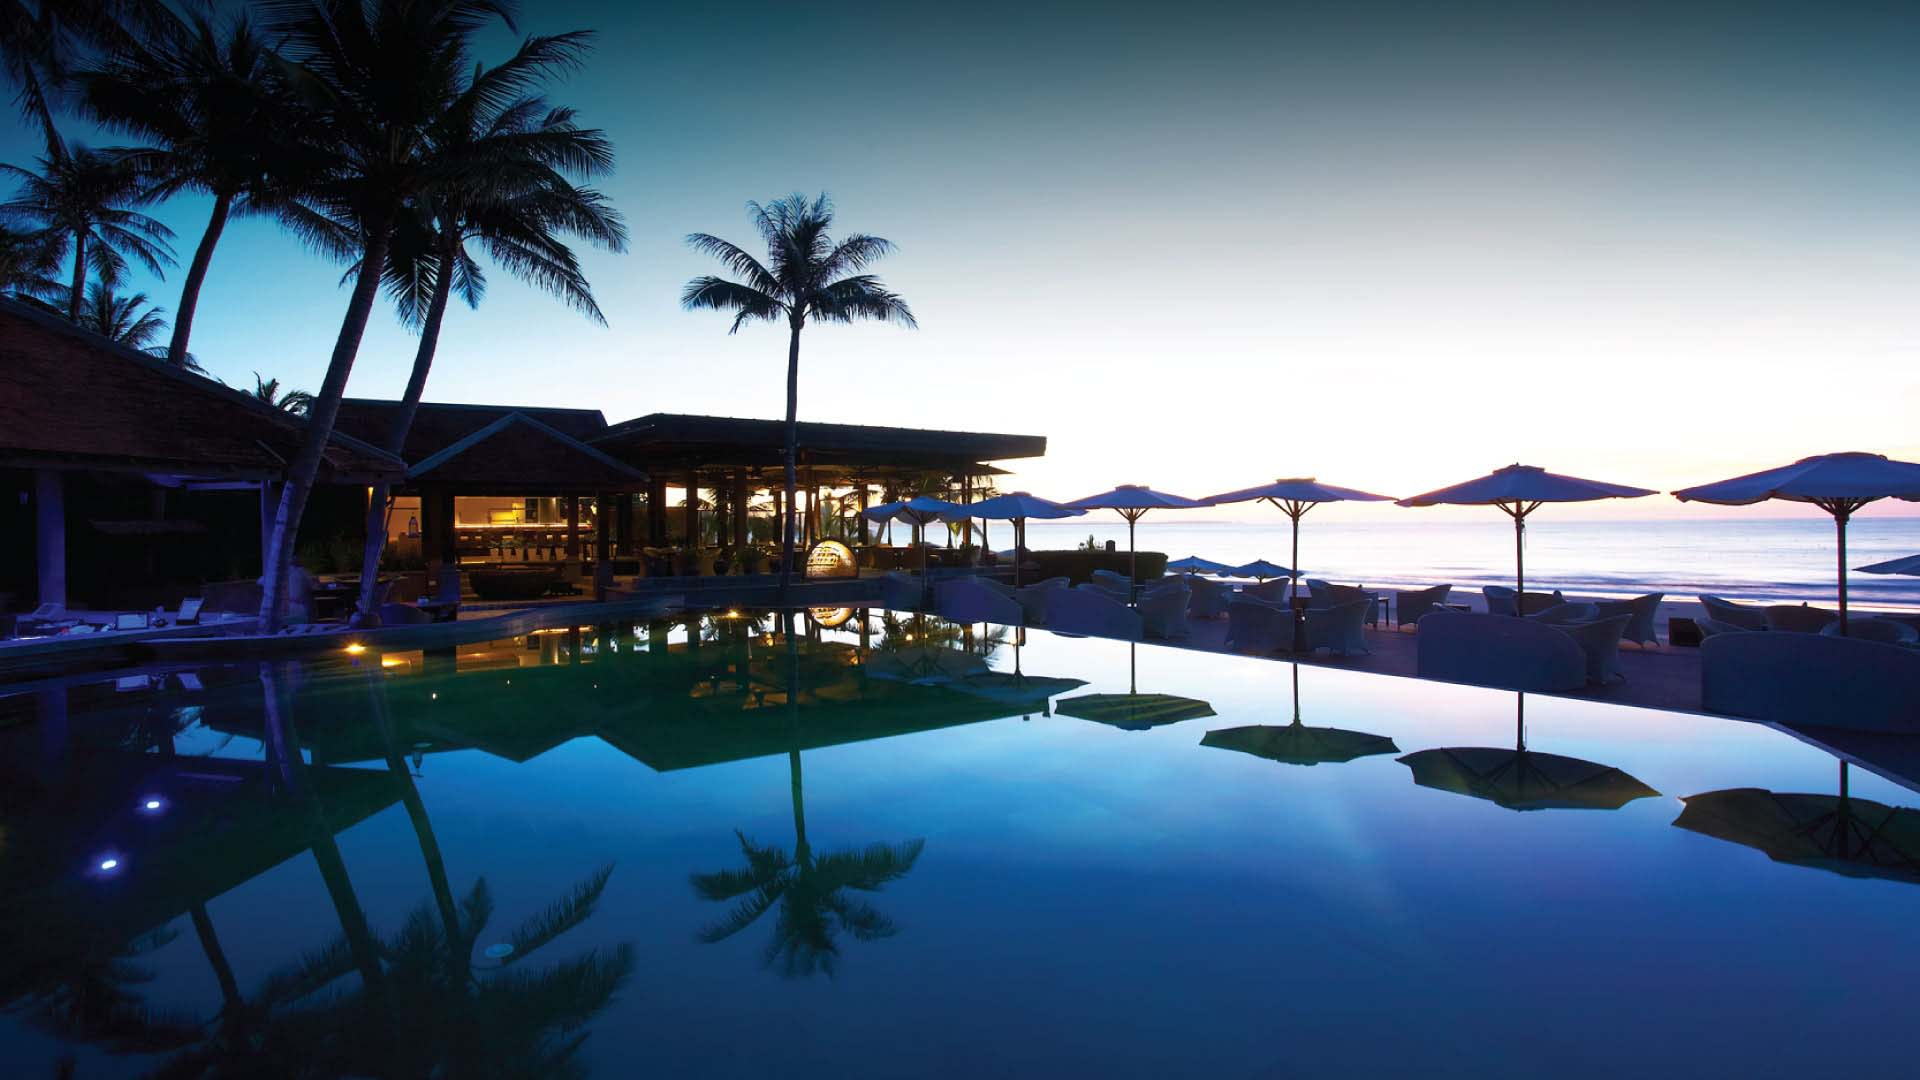 https://assets.anantara.com/image/upload/q_auto,f_auto/media/minor/anantara/images/anantara-mui-ne-resort/the-resort/desktop-banner/anantara_mui_ne_pool_header_1920x1080.jpg